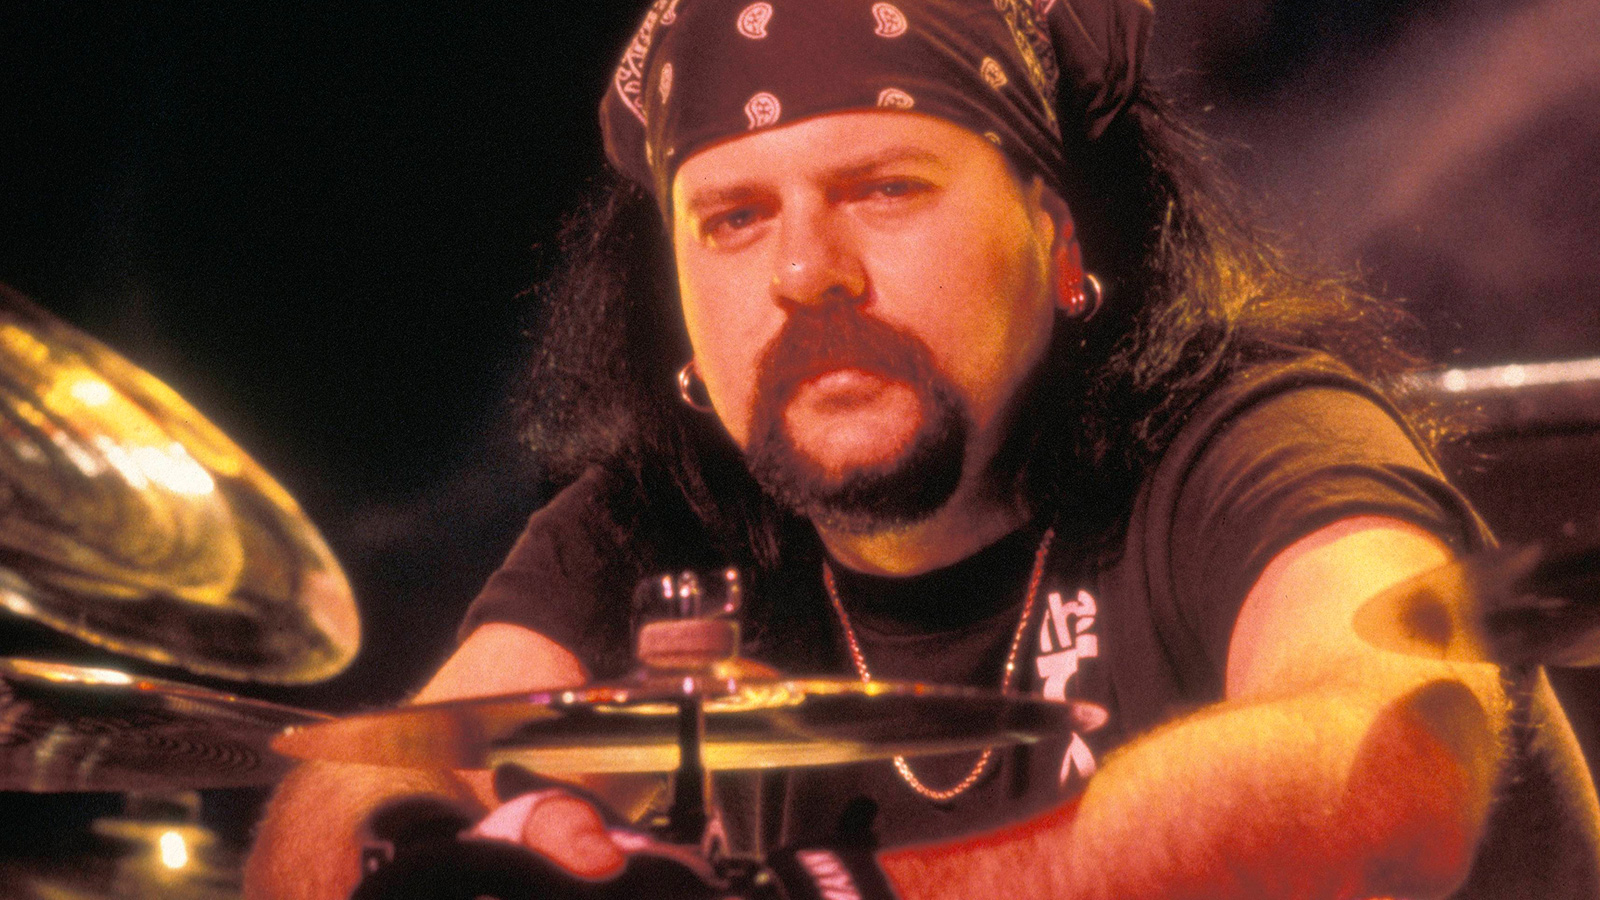 Pantera Drummer Vinnie Paul's Headstone Unveiled at Texas Grave Site